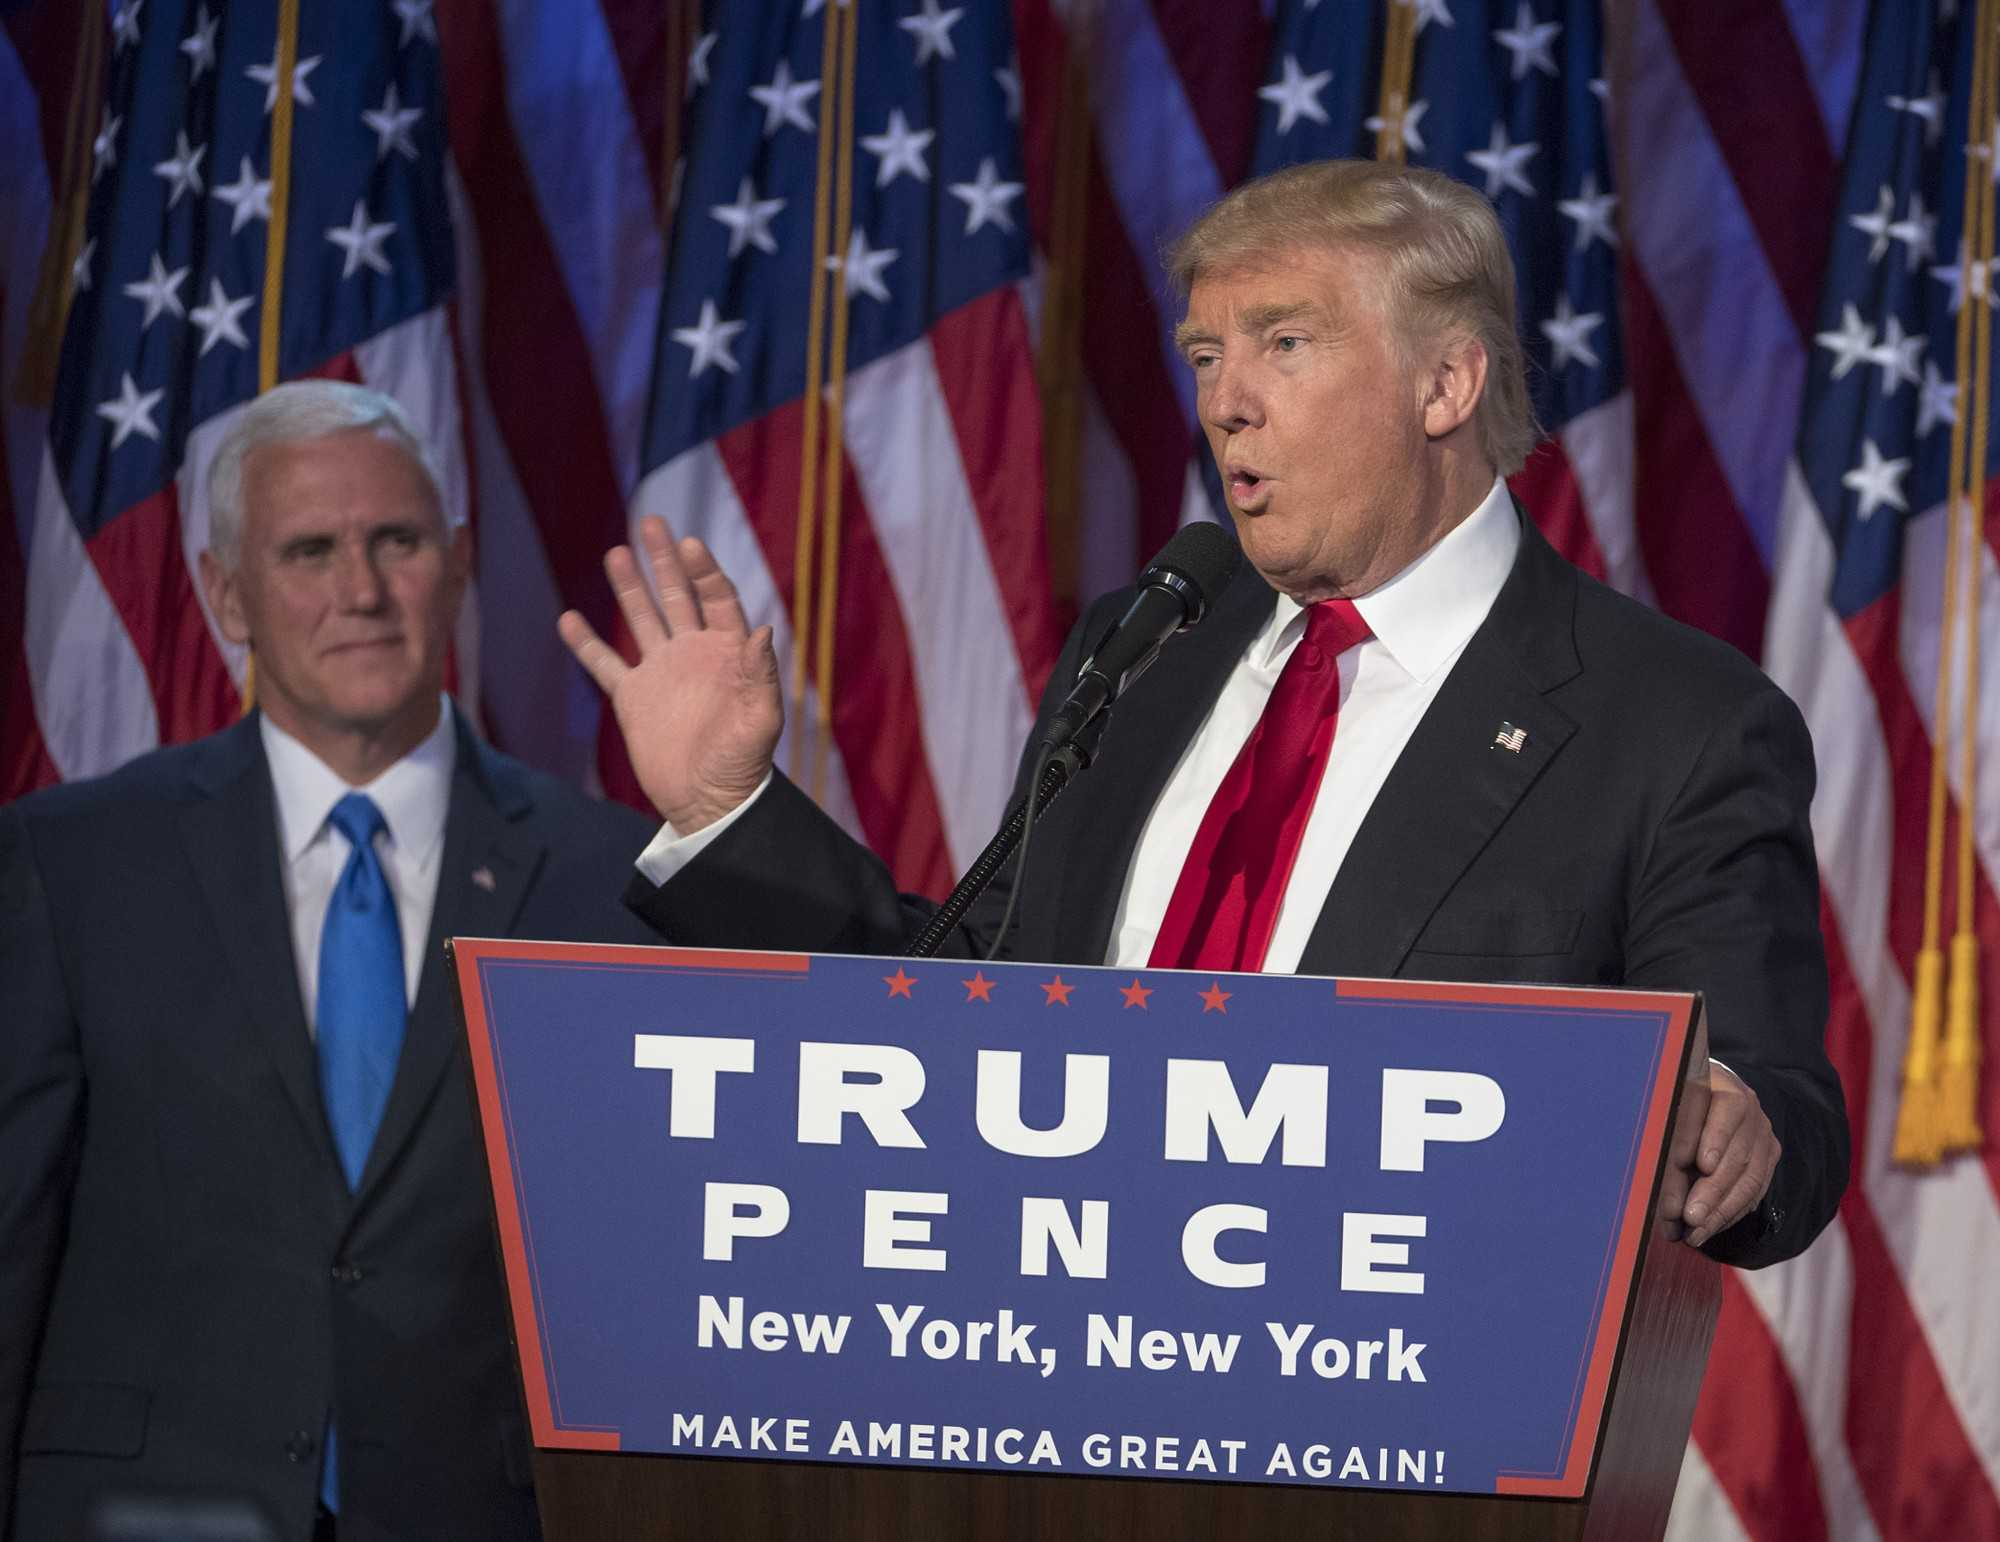 Trump shown speaking on the podium next to running mate Mike Pence